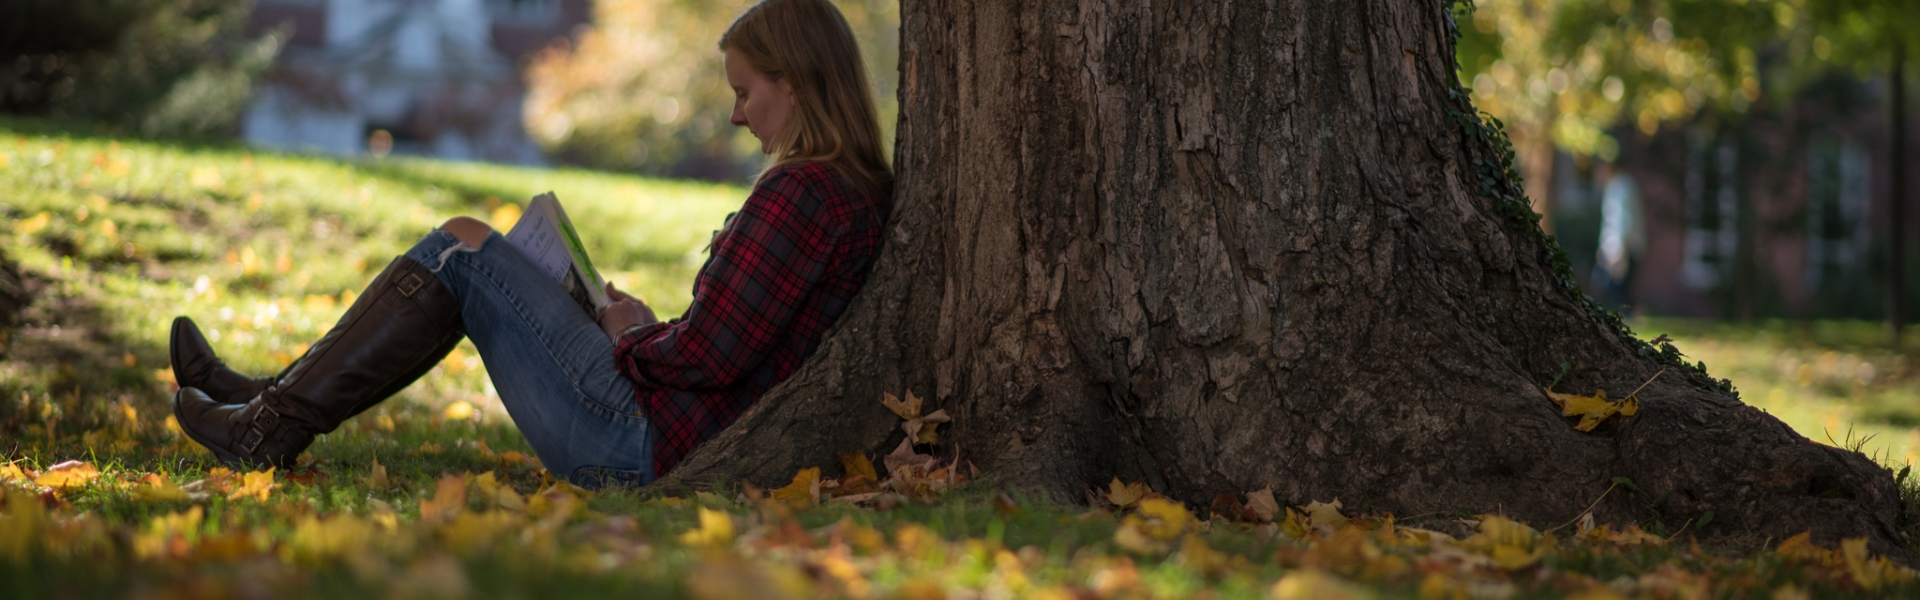 Student sitting next to tree in the fall